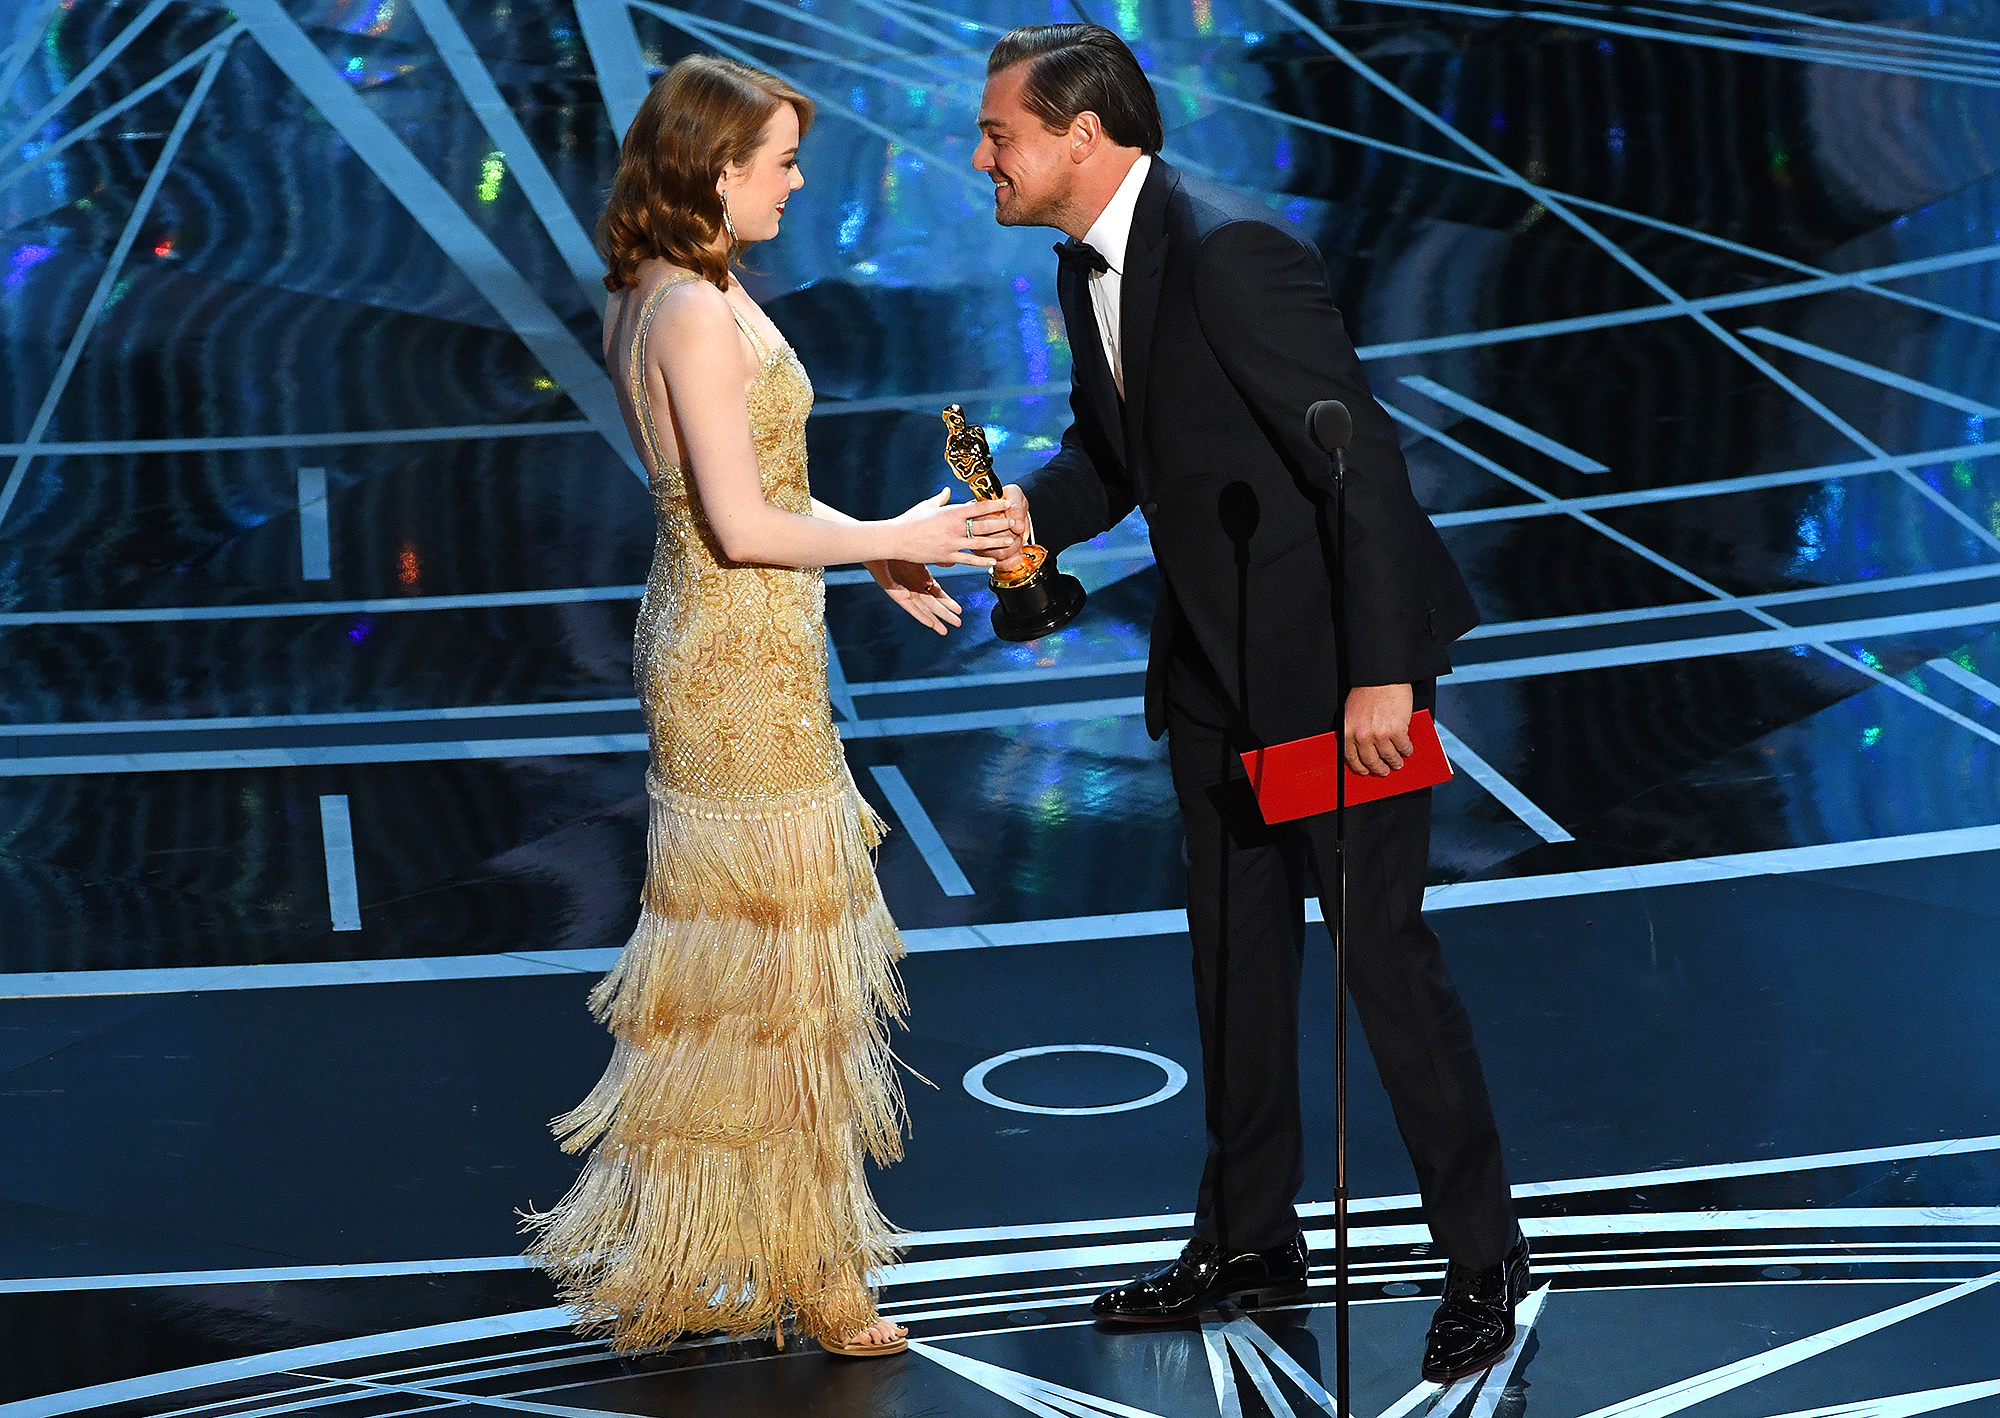 Emma Stone รับรางวัล Oscar จาก Childhood Crush Leonardo DiCaprio: 'Most Surreal Moment'